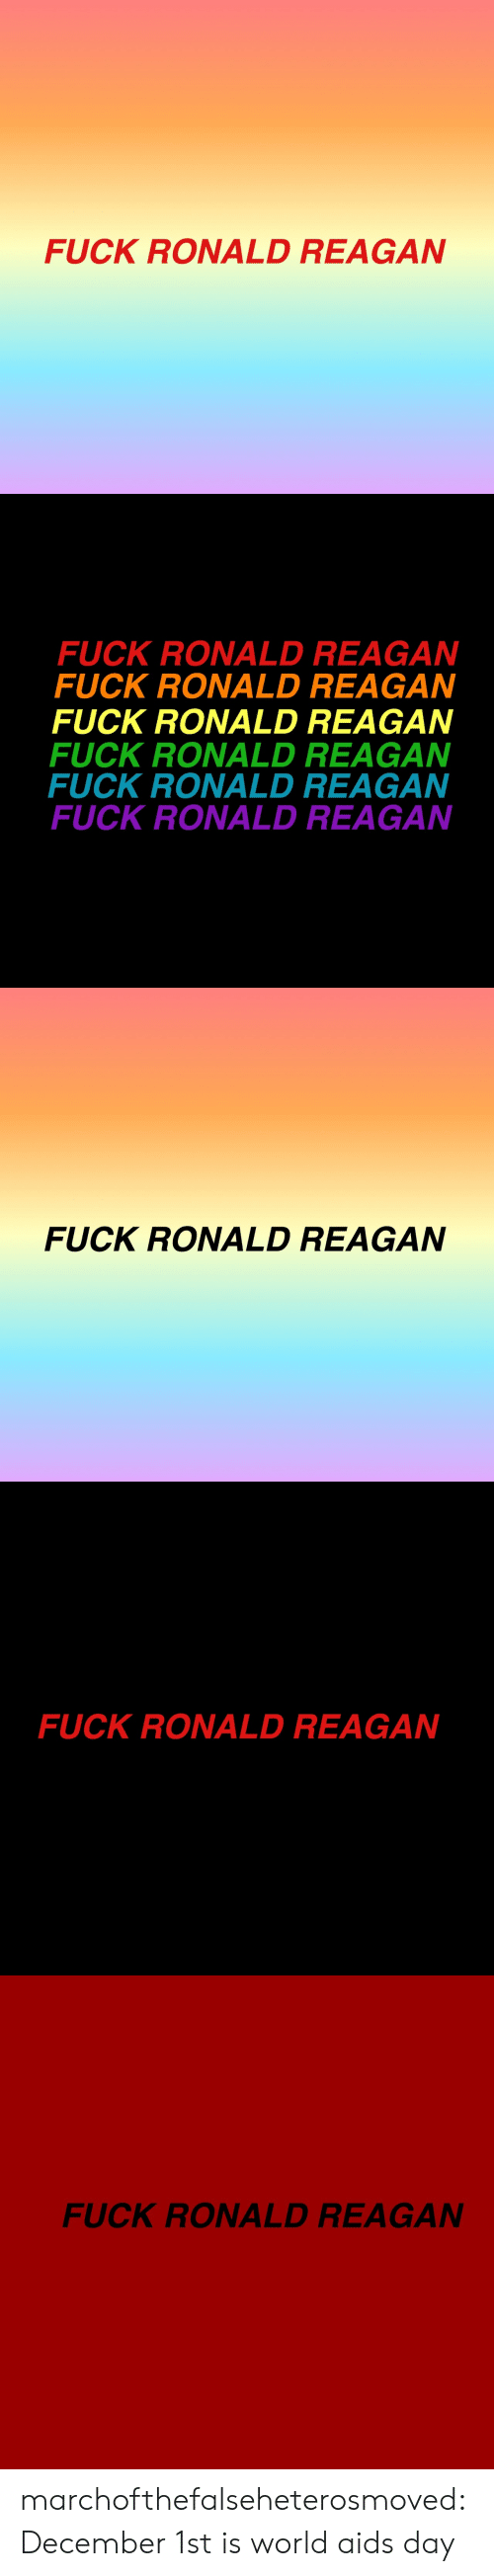 Tumblr, Blog, and Fuck: FUCK RONALD REAGAN   FUCK RONALD REAGAN  FUCK RONALD REAGAN  FUCK RONALD REAGAN  FUCK RONALD REAGAN  FUCK RONALD REAGAN  FUCK RONALD REAGAN   FUCK RONALD REAGAN   FUCK RONALD REAGAN   FUCK RONALD REAGAN marchofthefalseheterosmoved: December 1st is world aids day